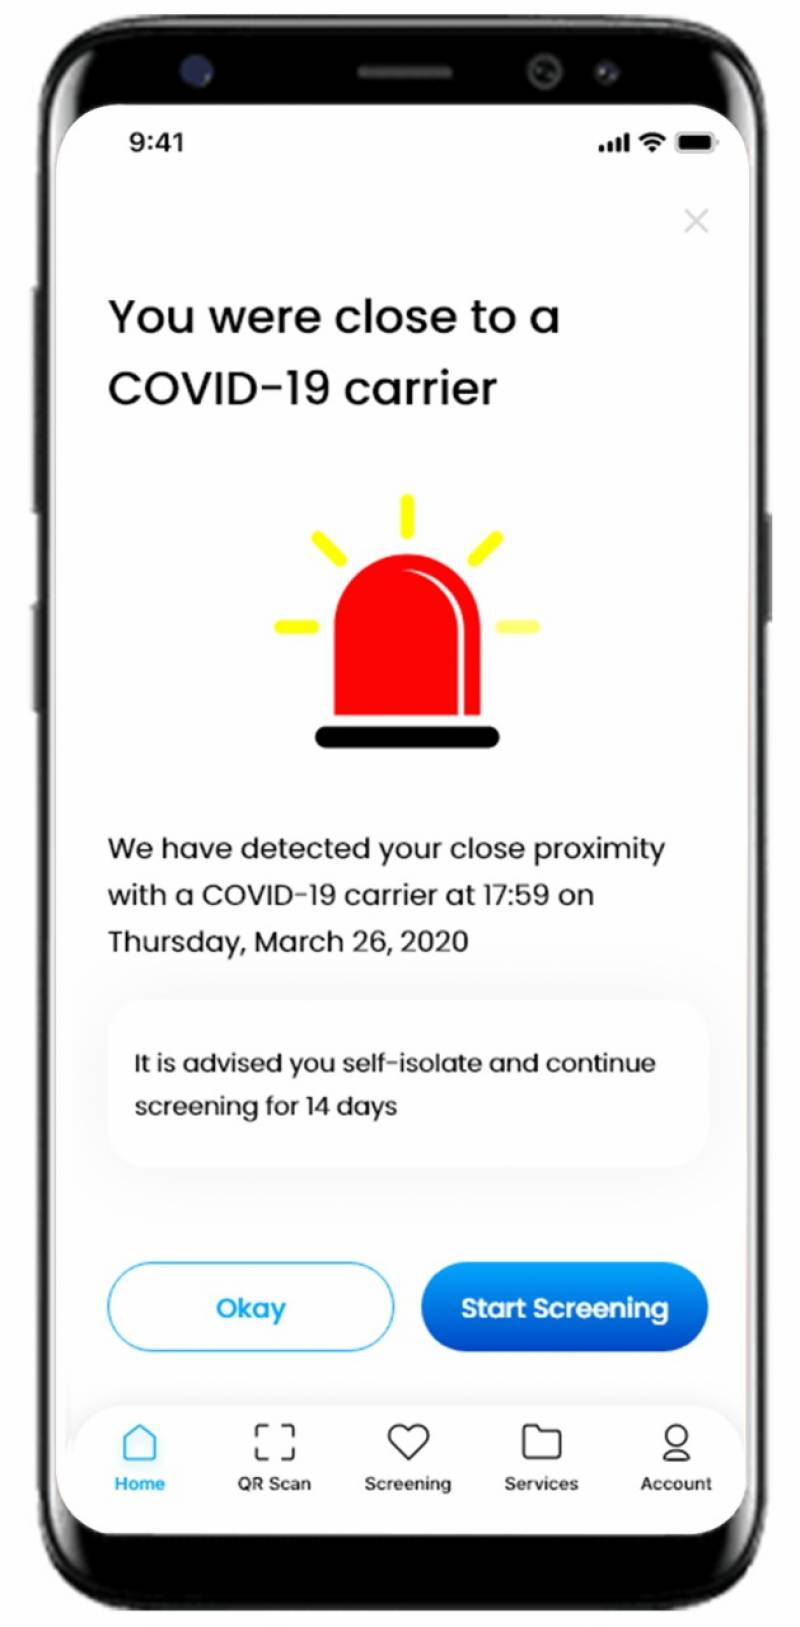 PITB-CoCare to launch contact tracing app to limit COVID-19 spread